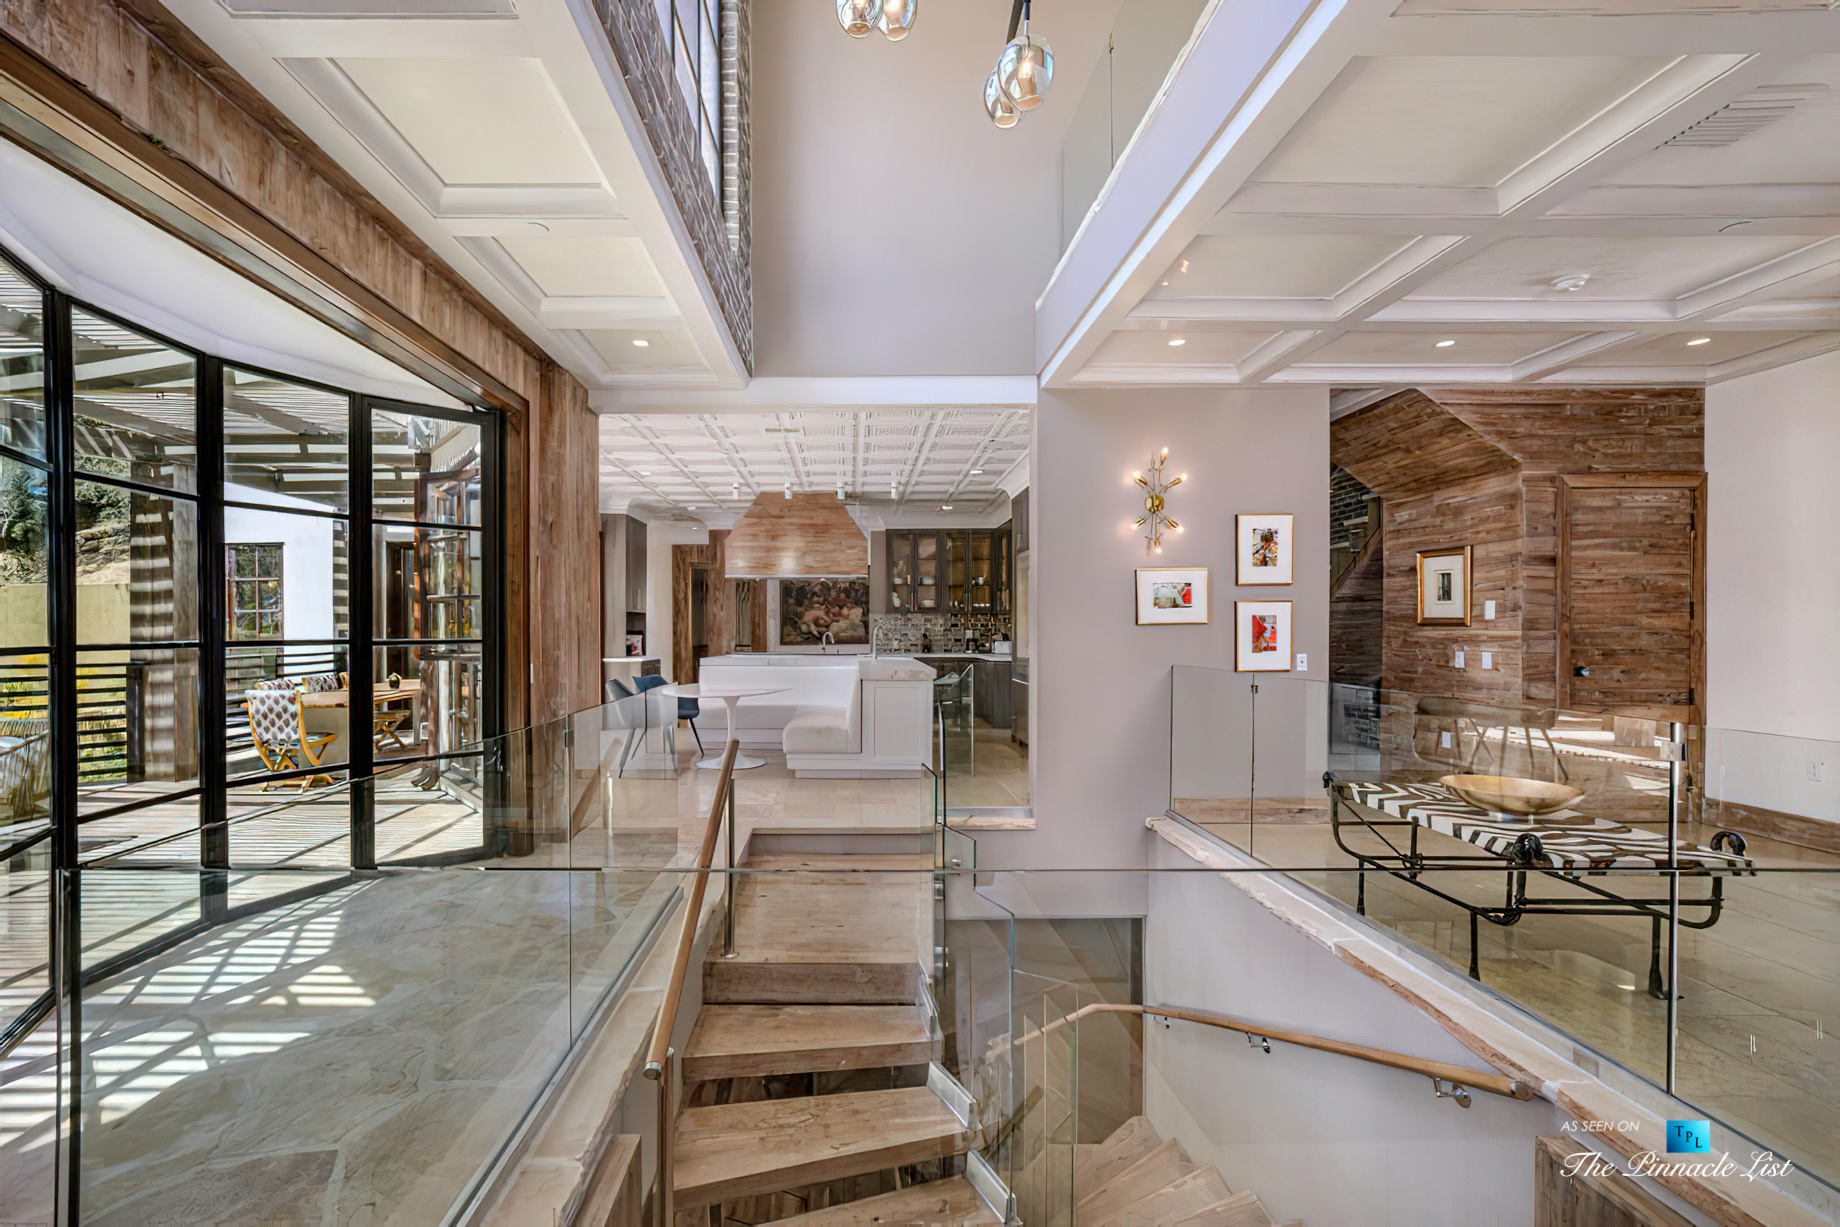 1105 Rivas Canyon Rd, Pacific Palisades, CA, USA – Luxury Real Estate – Entrance Stairs and Living Room